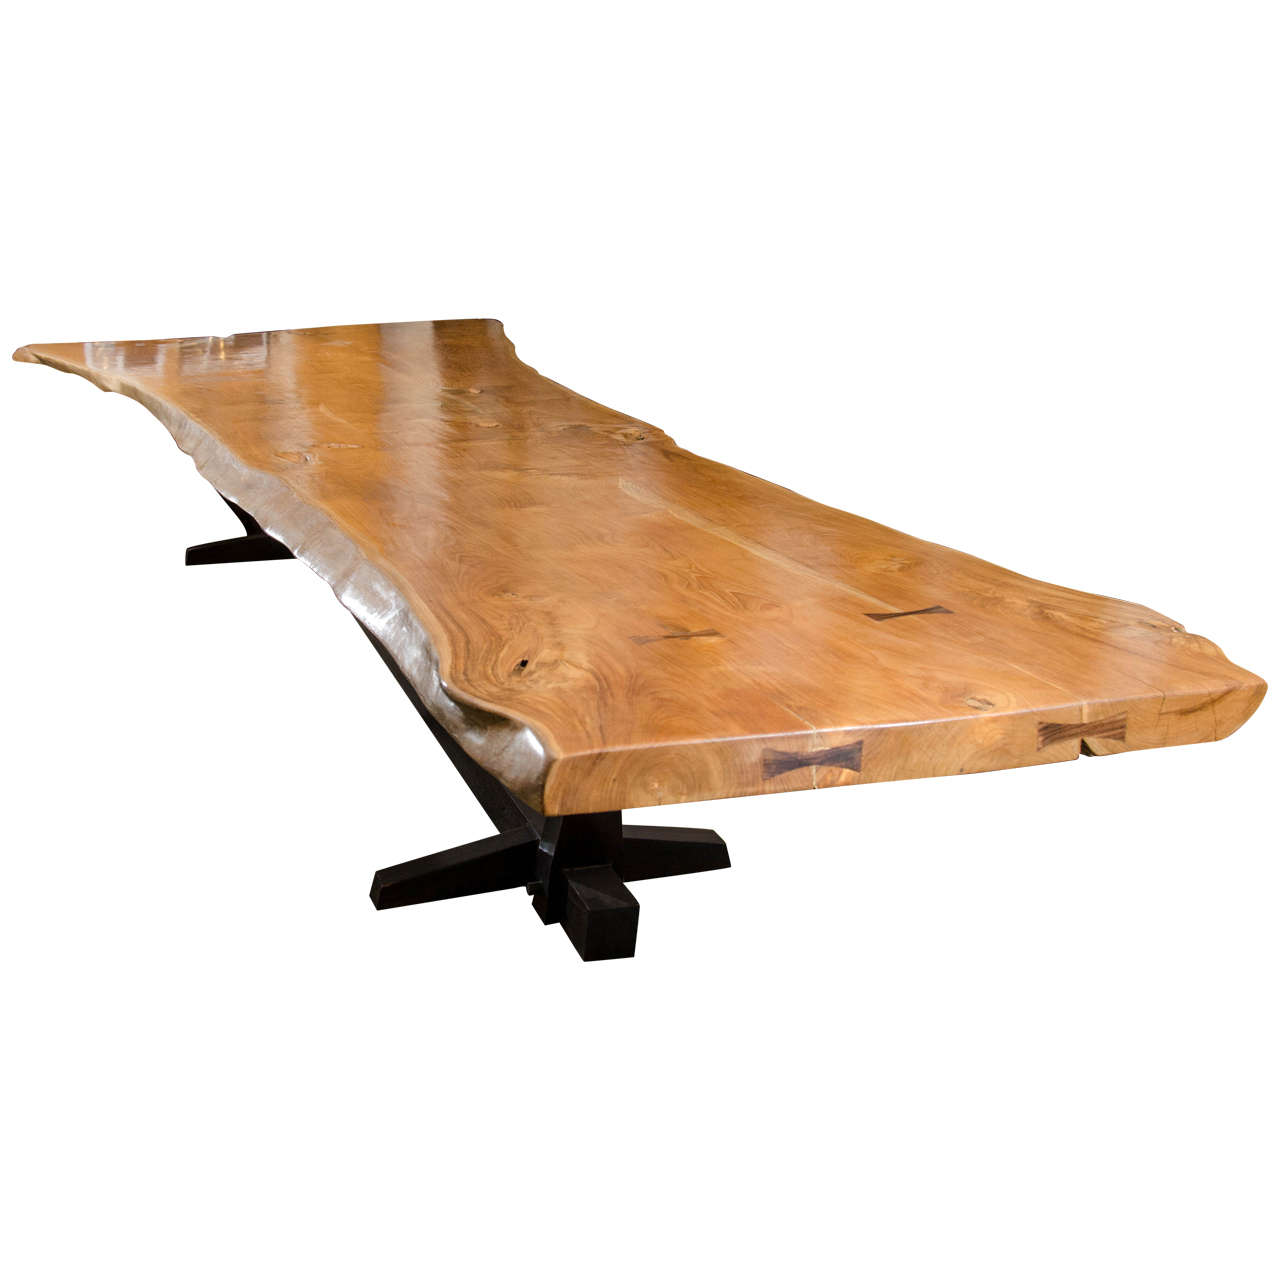 Andrianna Shamaris Massive Teak Wood Live Edge Dining Table For Sale